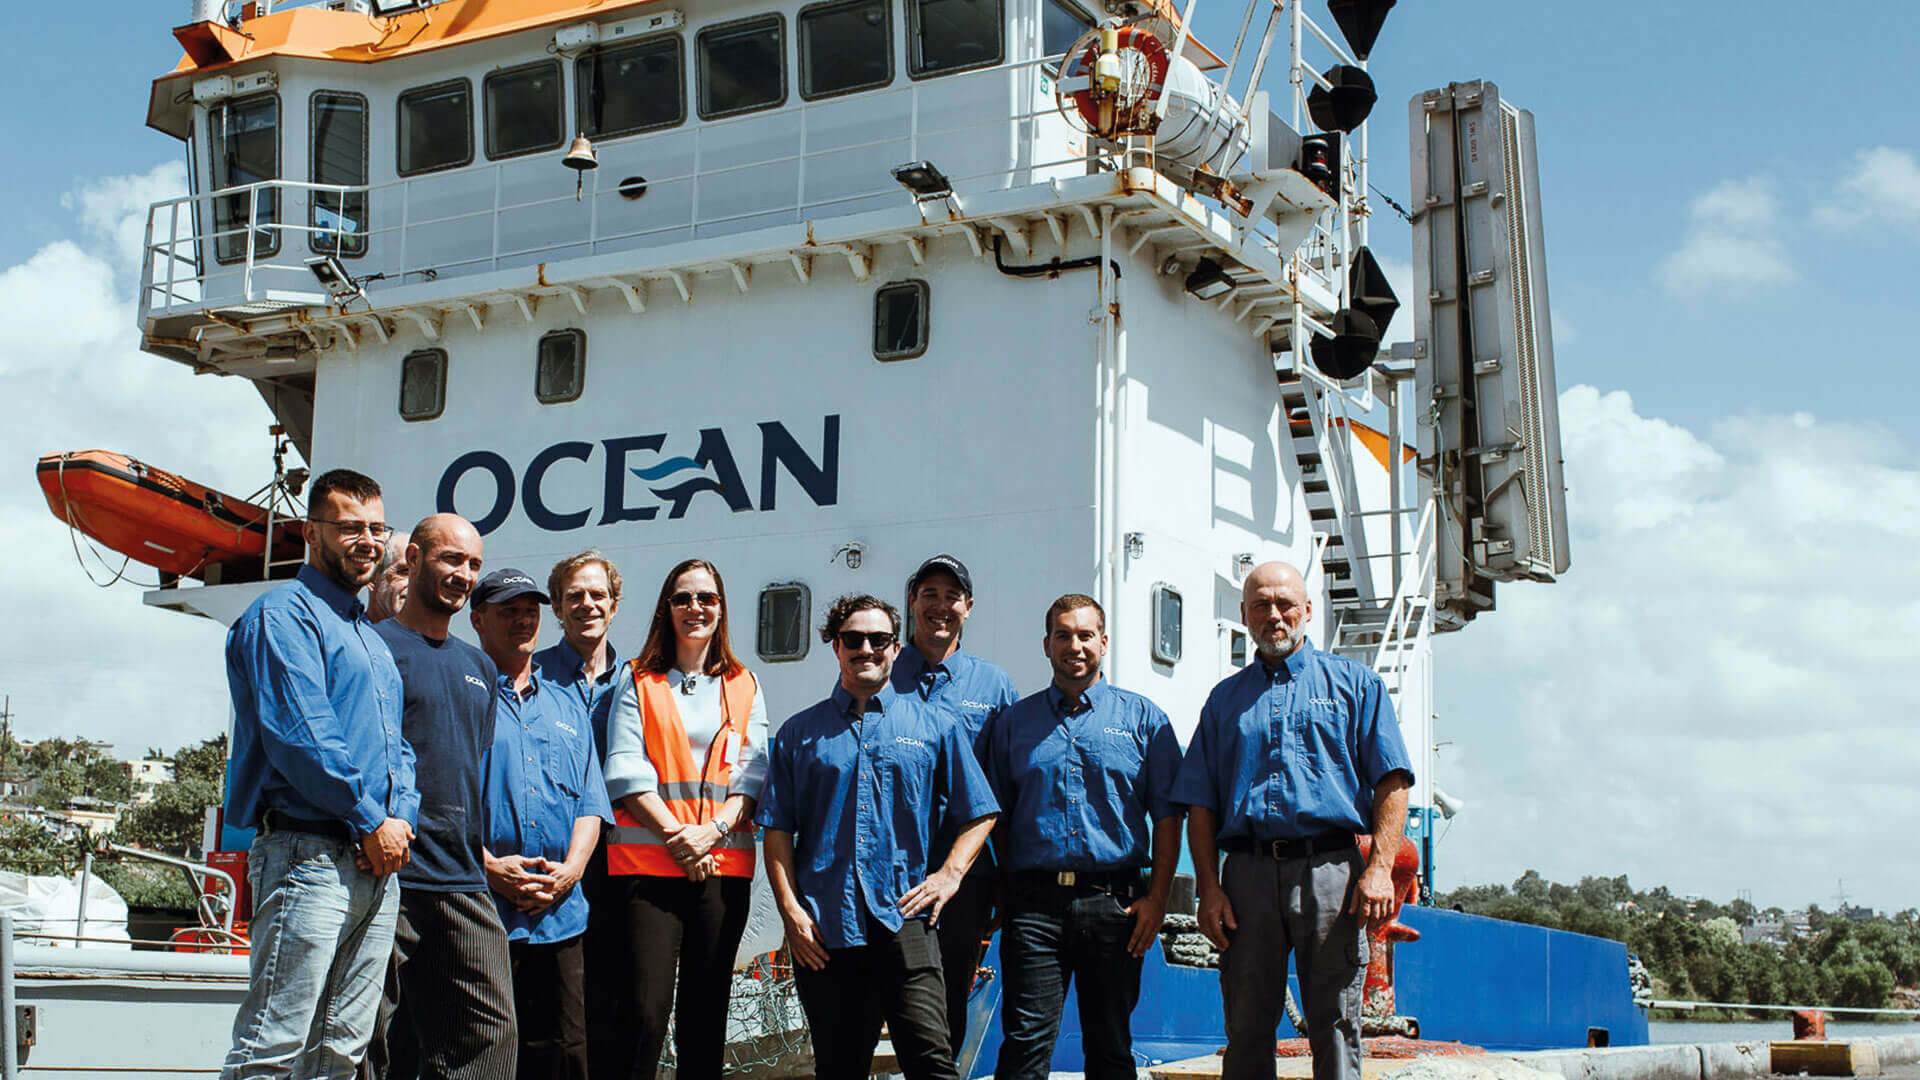 The ambassador of Canada in the Dominican Republic received on board of the OCEAN TRAVERSE NORD dredge